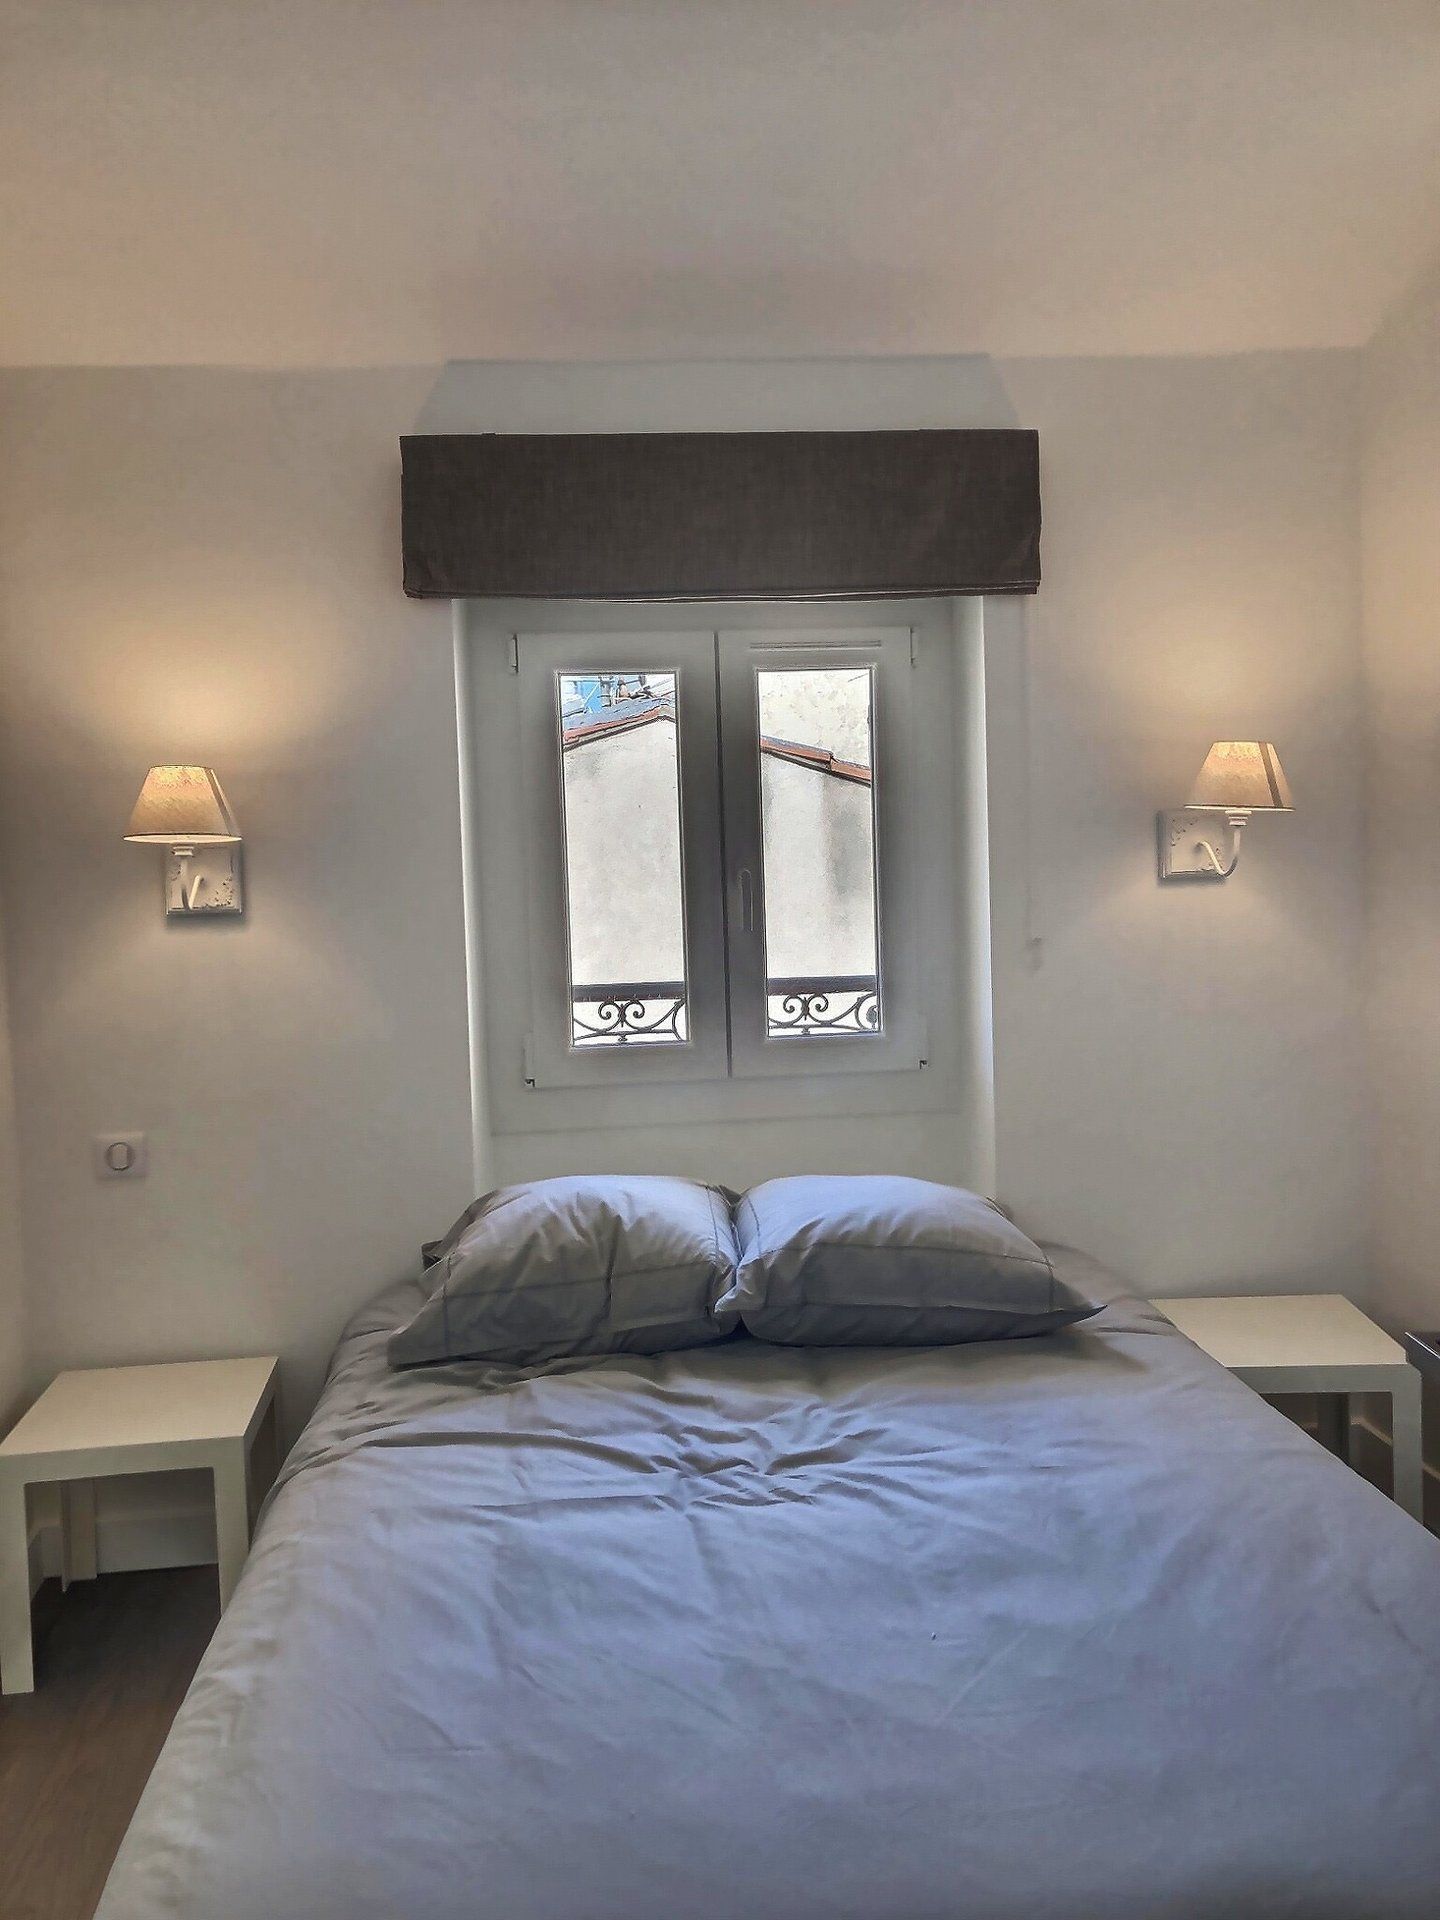 OLD ANTIBES - 3 bedrooms